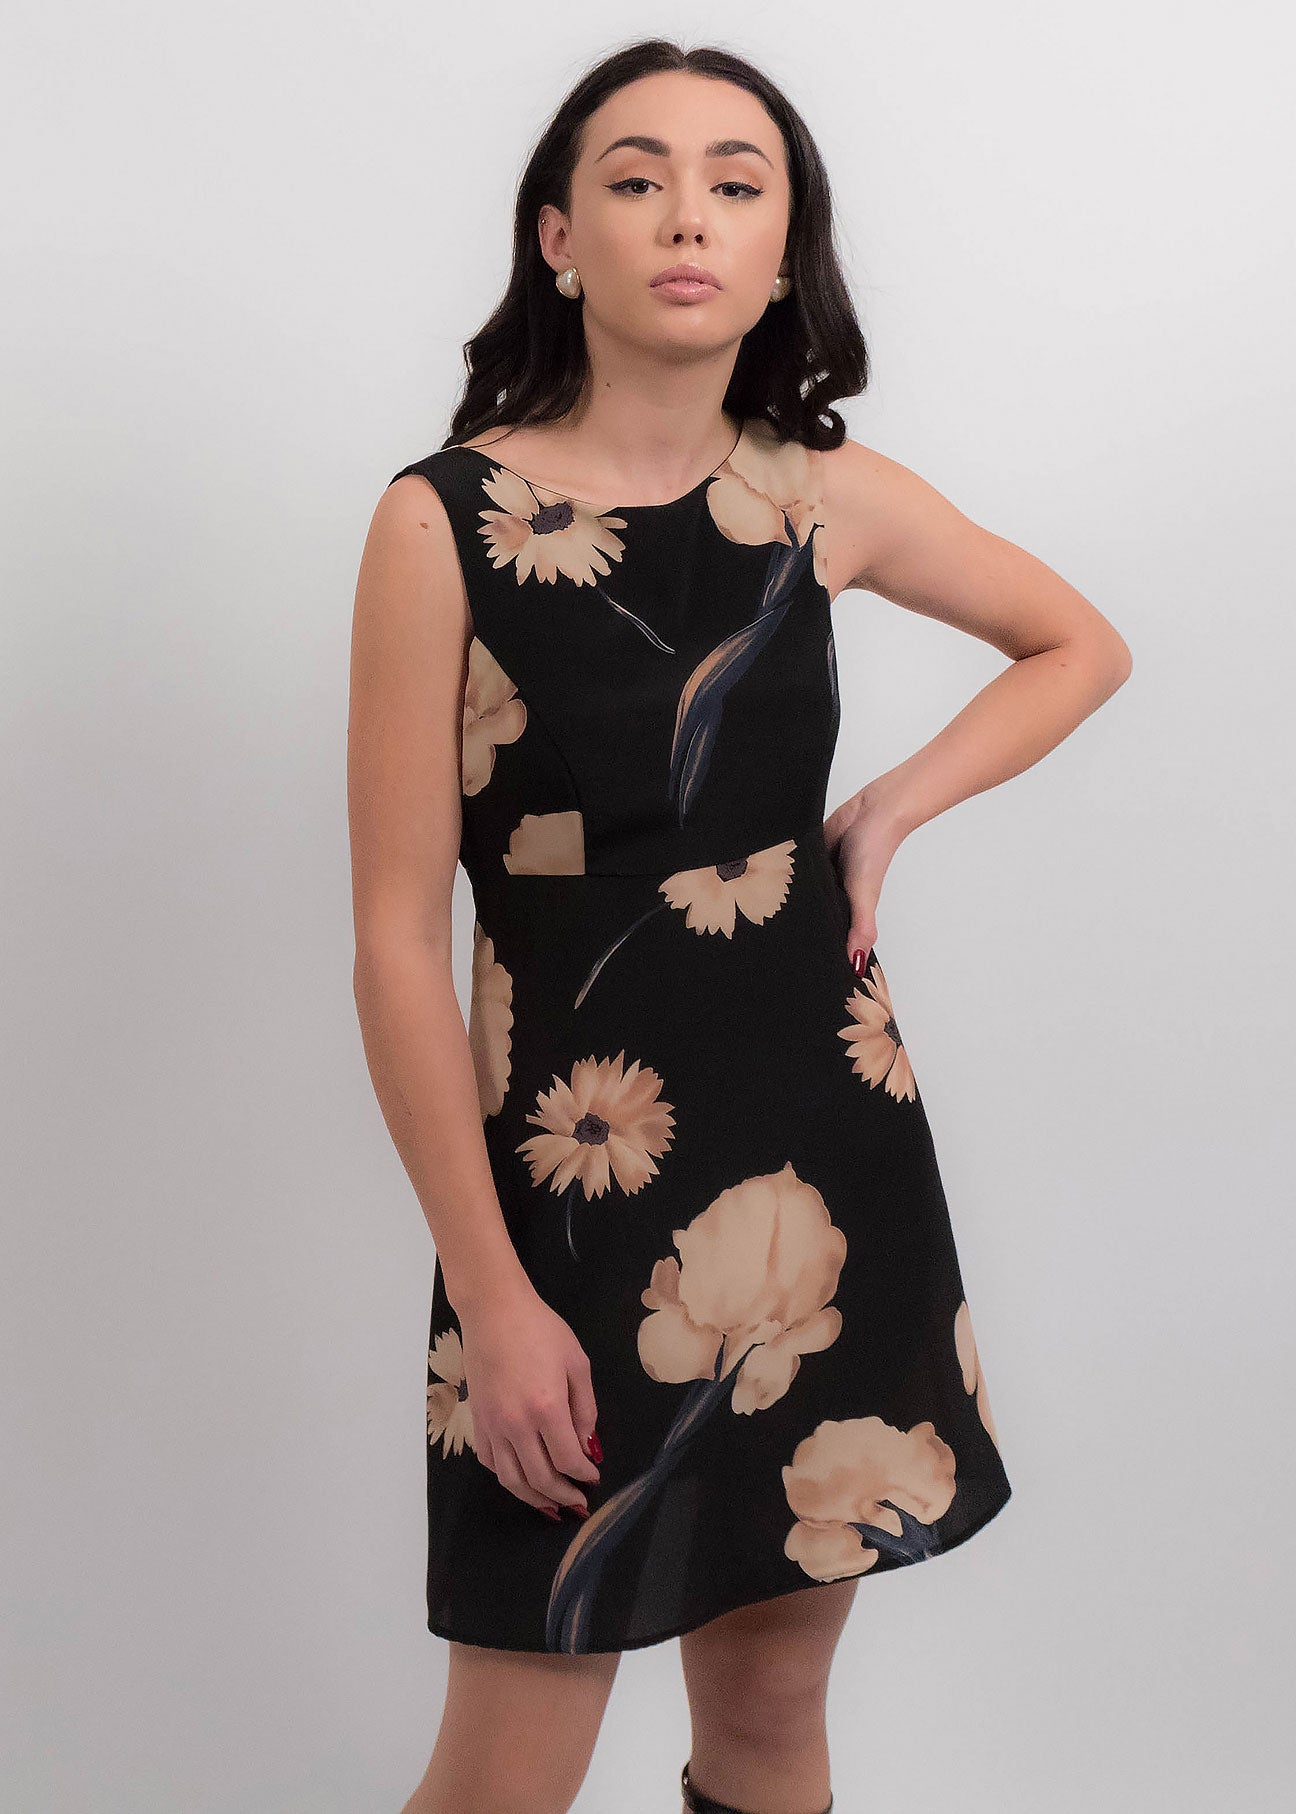 90s Bold Floral Dress